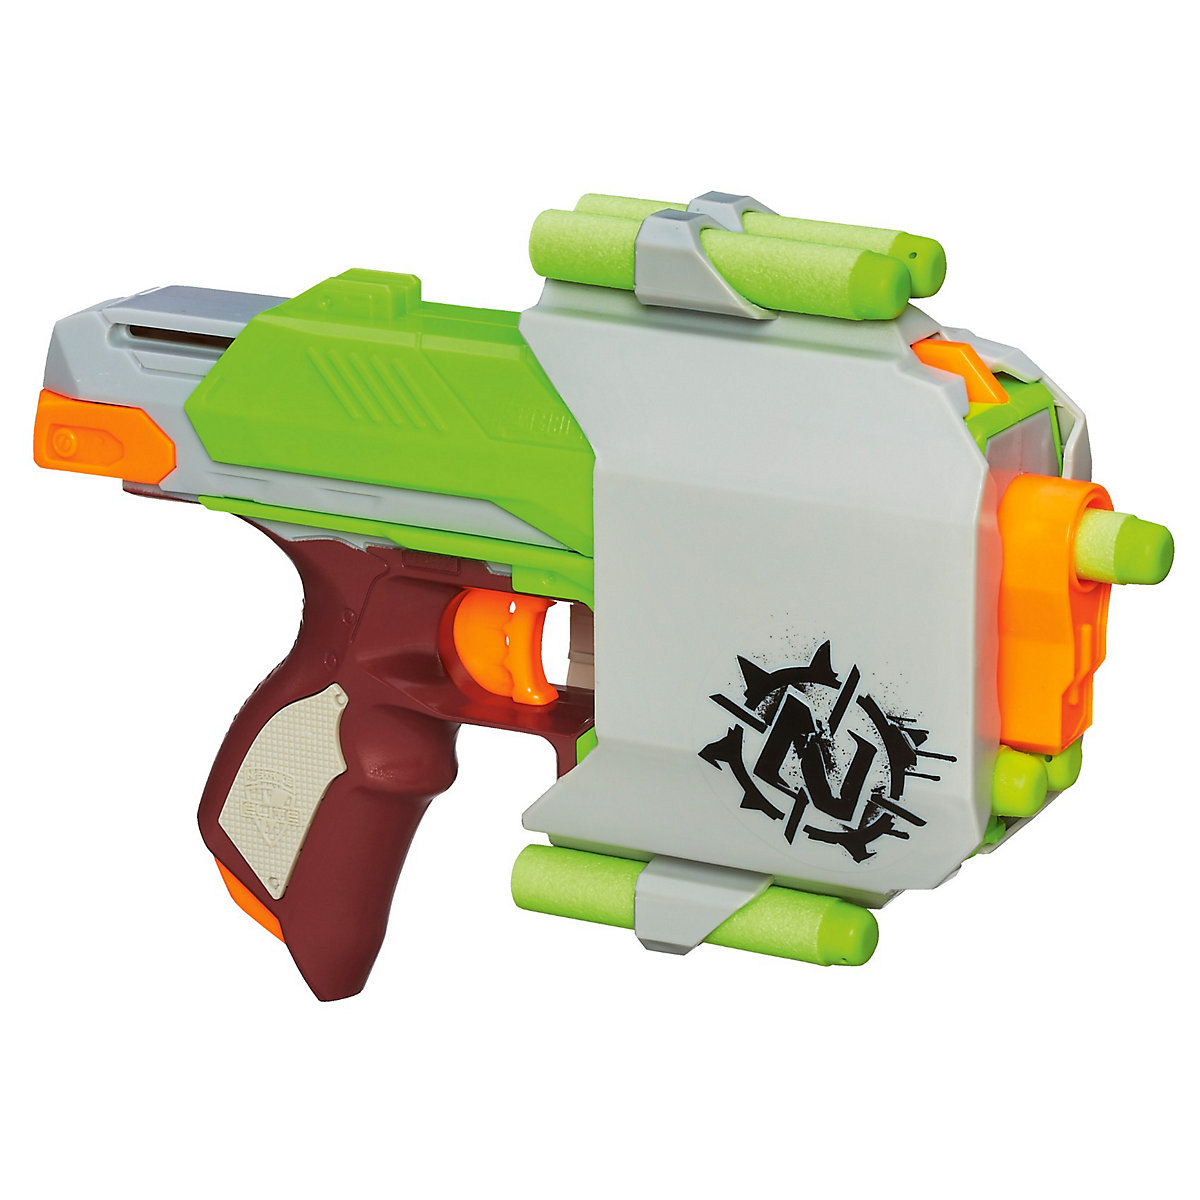 Toy Guns NERF 3405527 Children Kids Toy Gun Weapon Blasters Boys Shooting games Outdoor play children play house toy